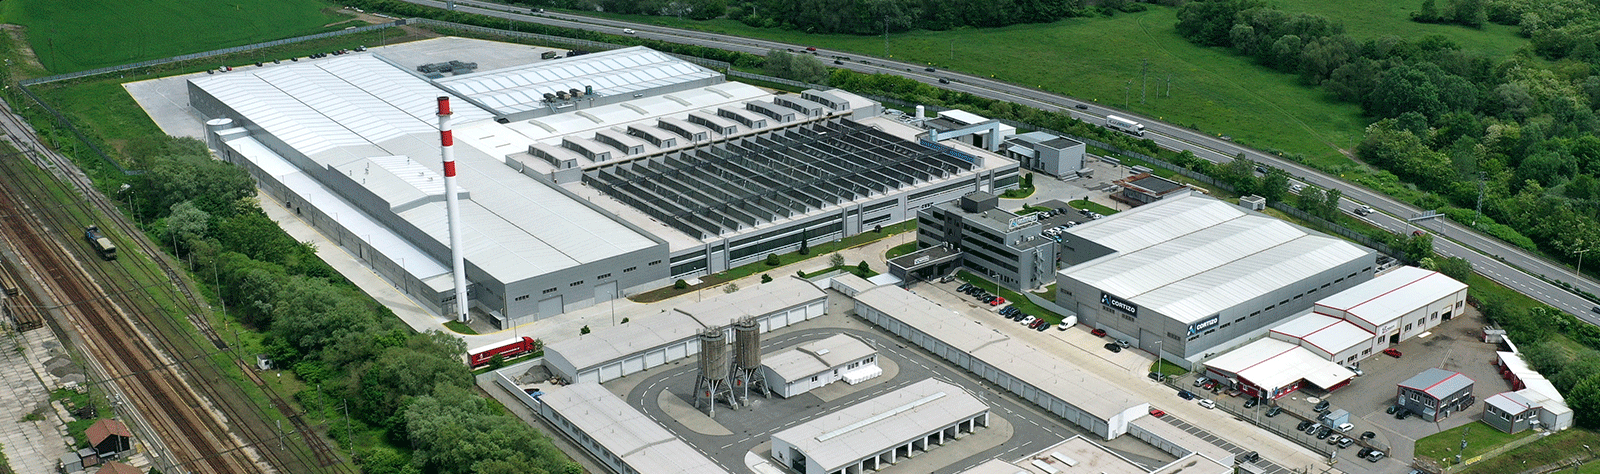 CORTIZO SLOVAKIA